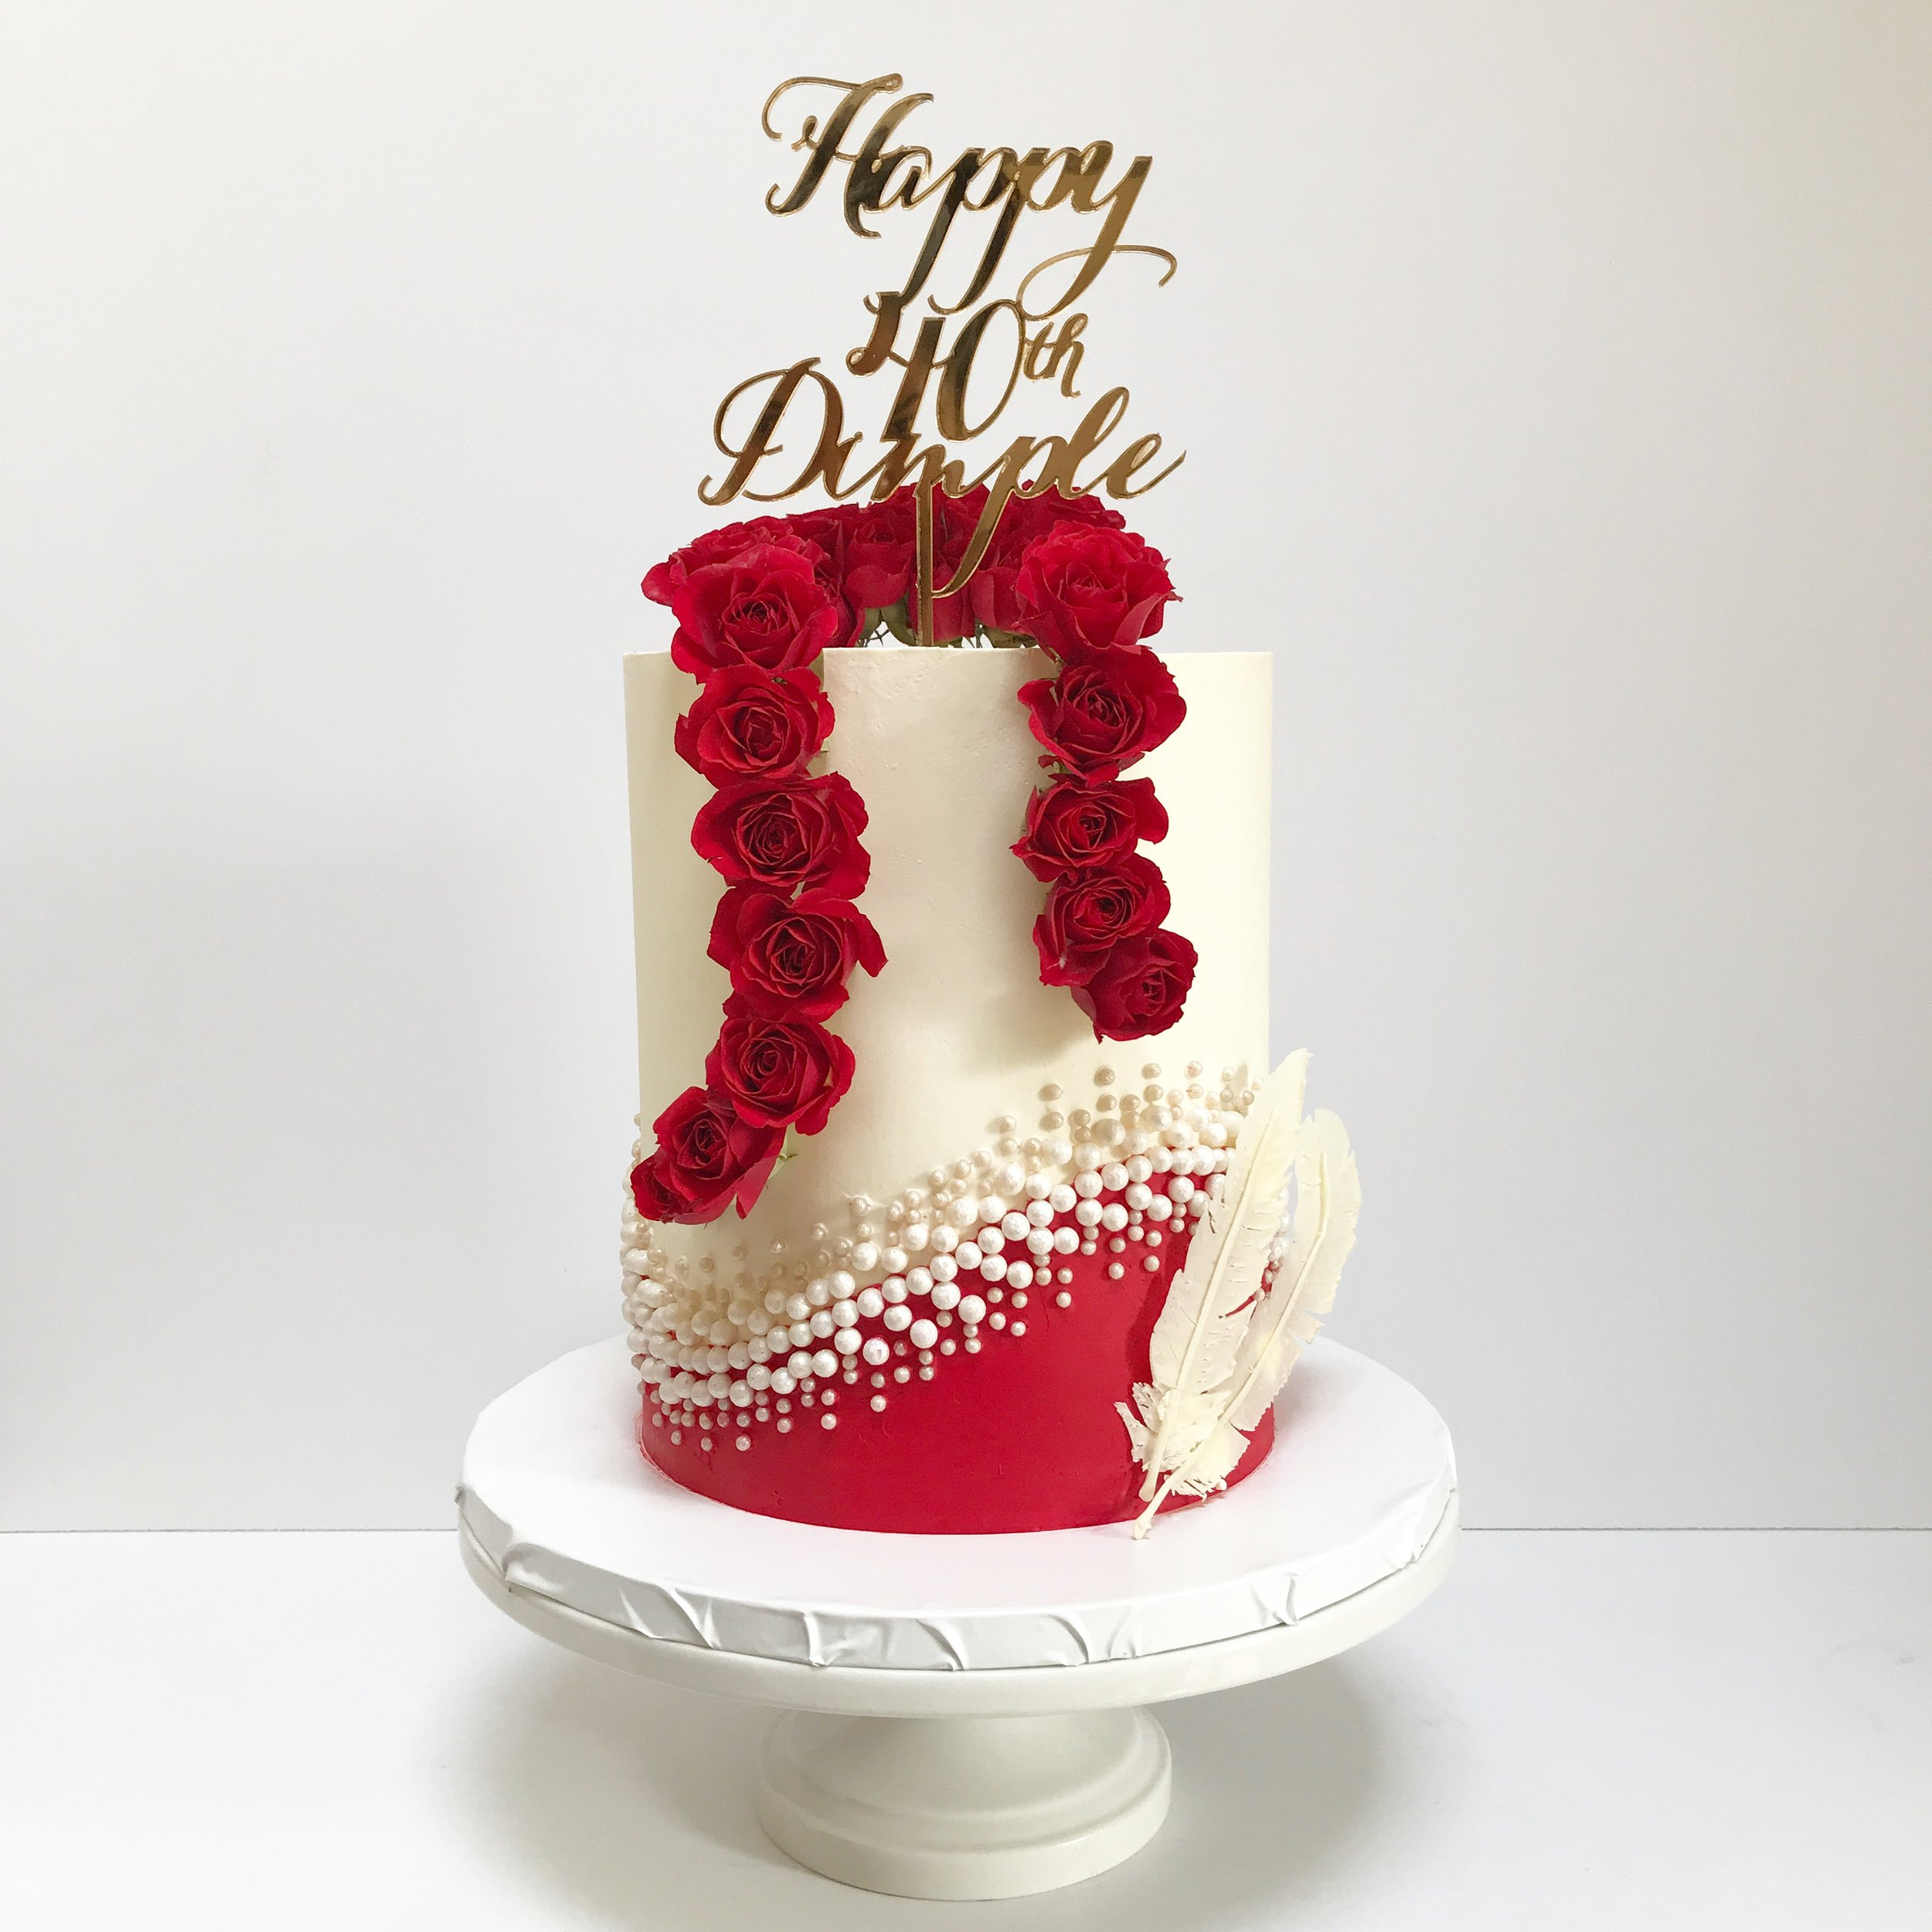 Vintage hollywood themed 40th buttercream birthday cake.JPG